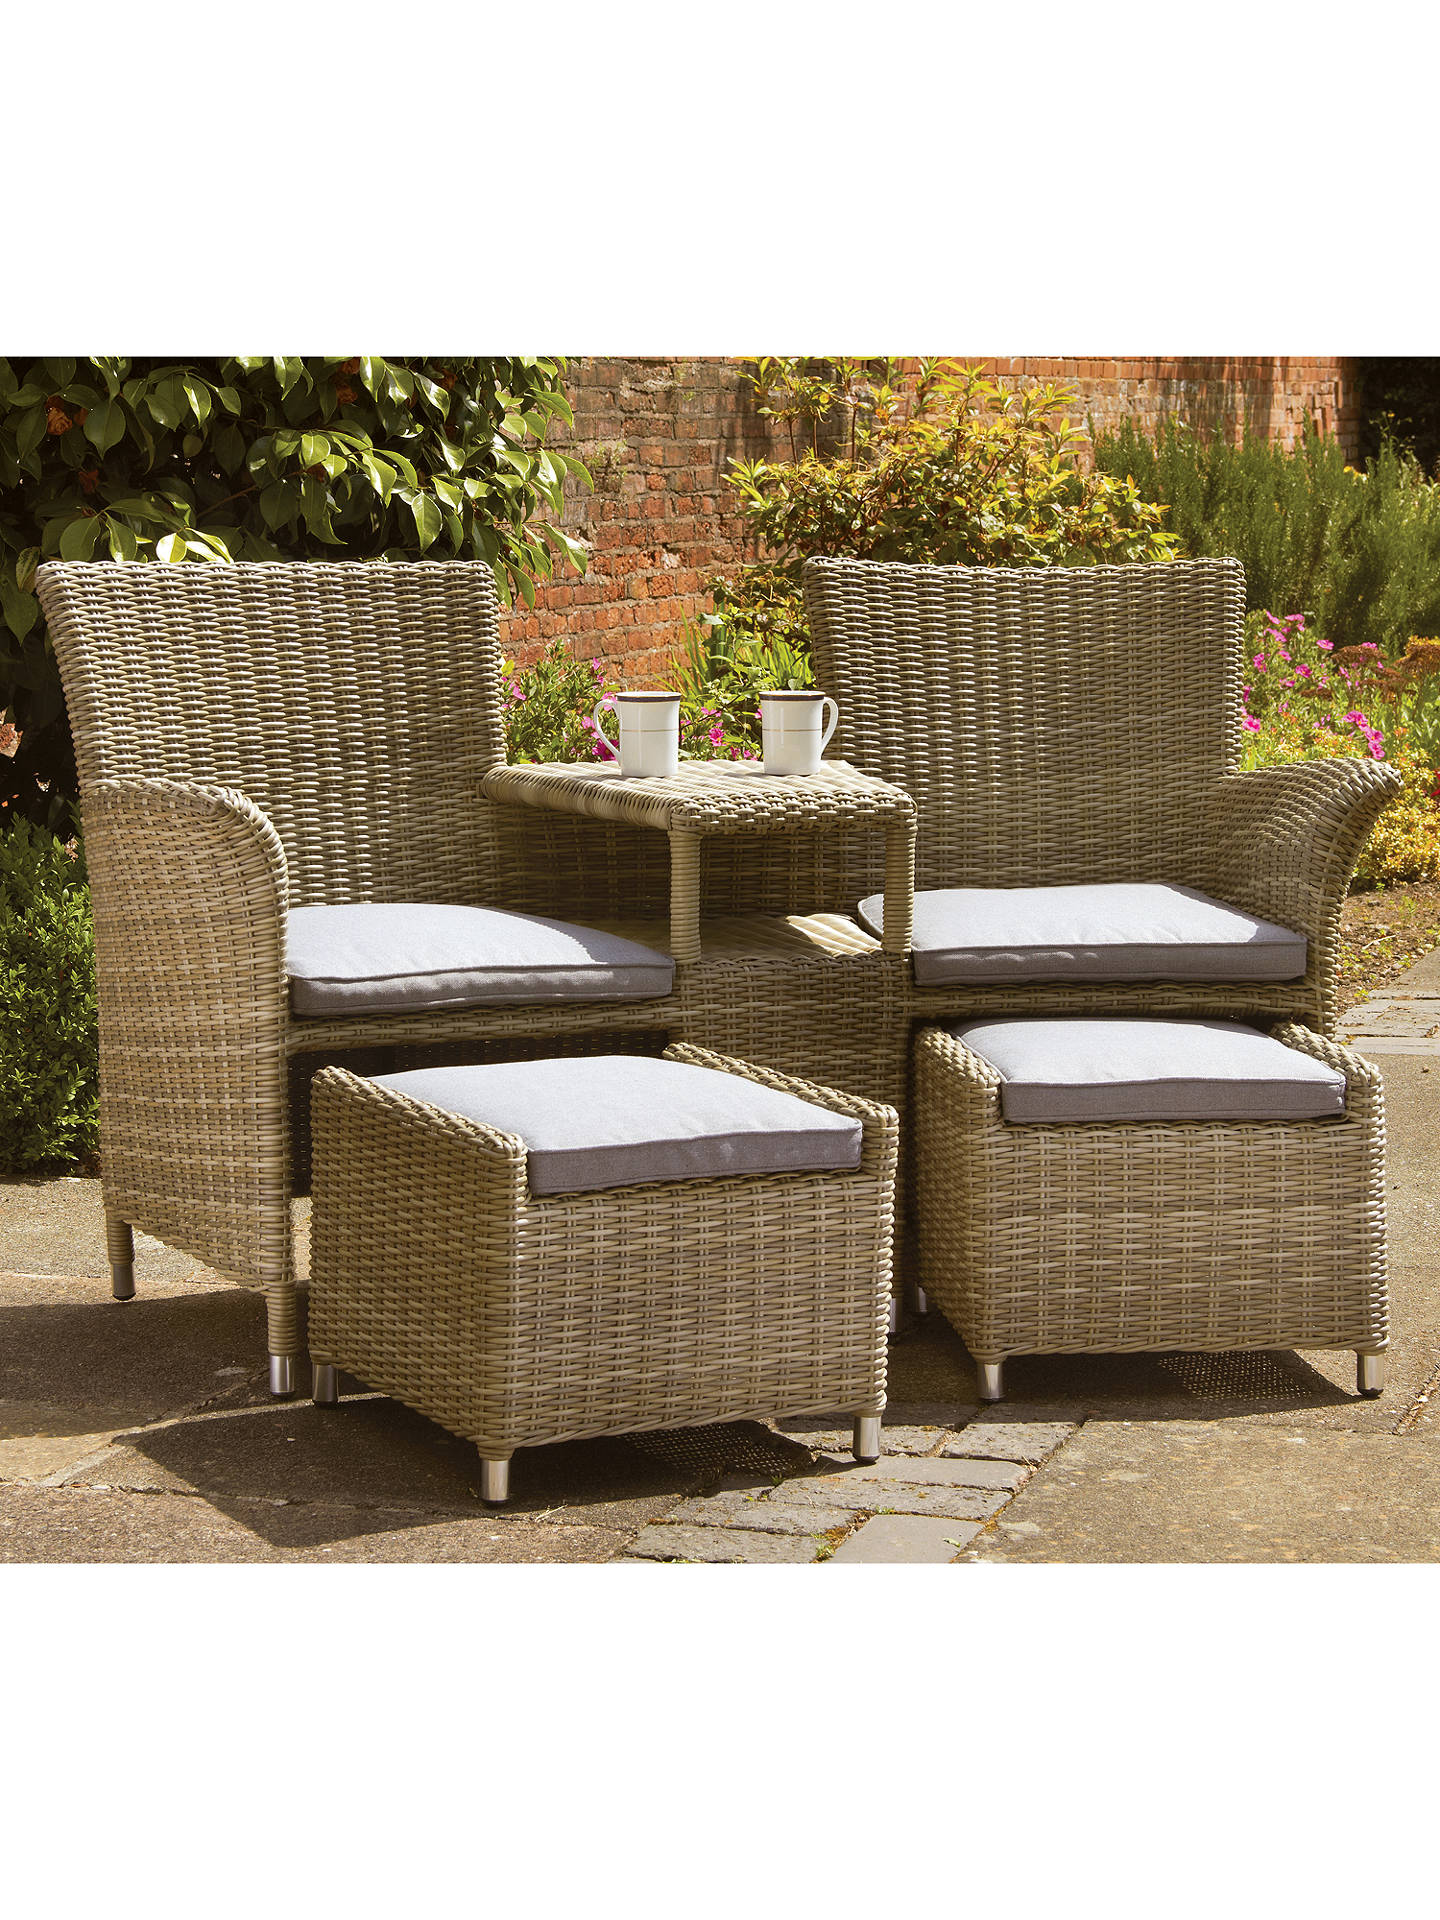 Buy Royalcraft Wentworth Garden Love Seat with Footstools Online at johnlewis.com